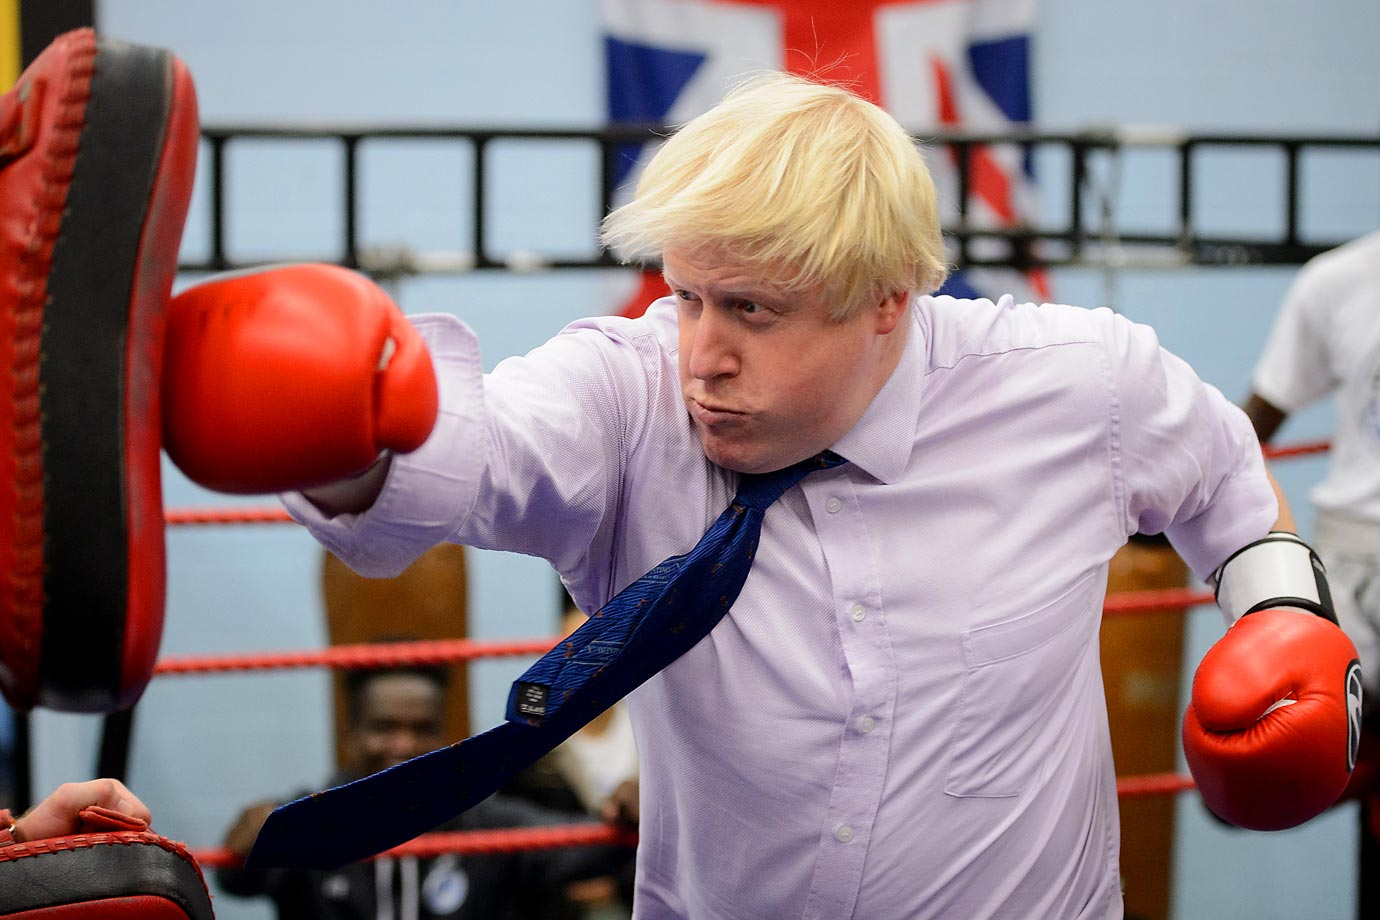 Boris Johnson, the mayor of London, during his visit to Fight for Peace Academy in North Woolwich, London.